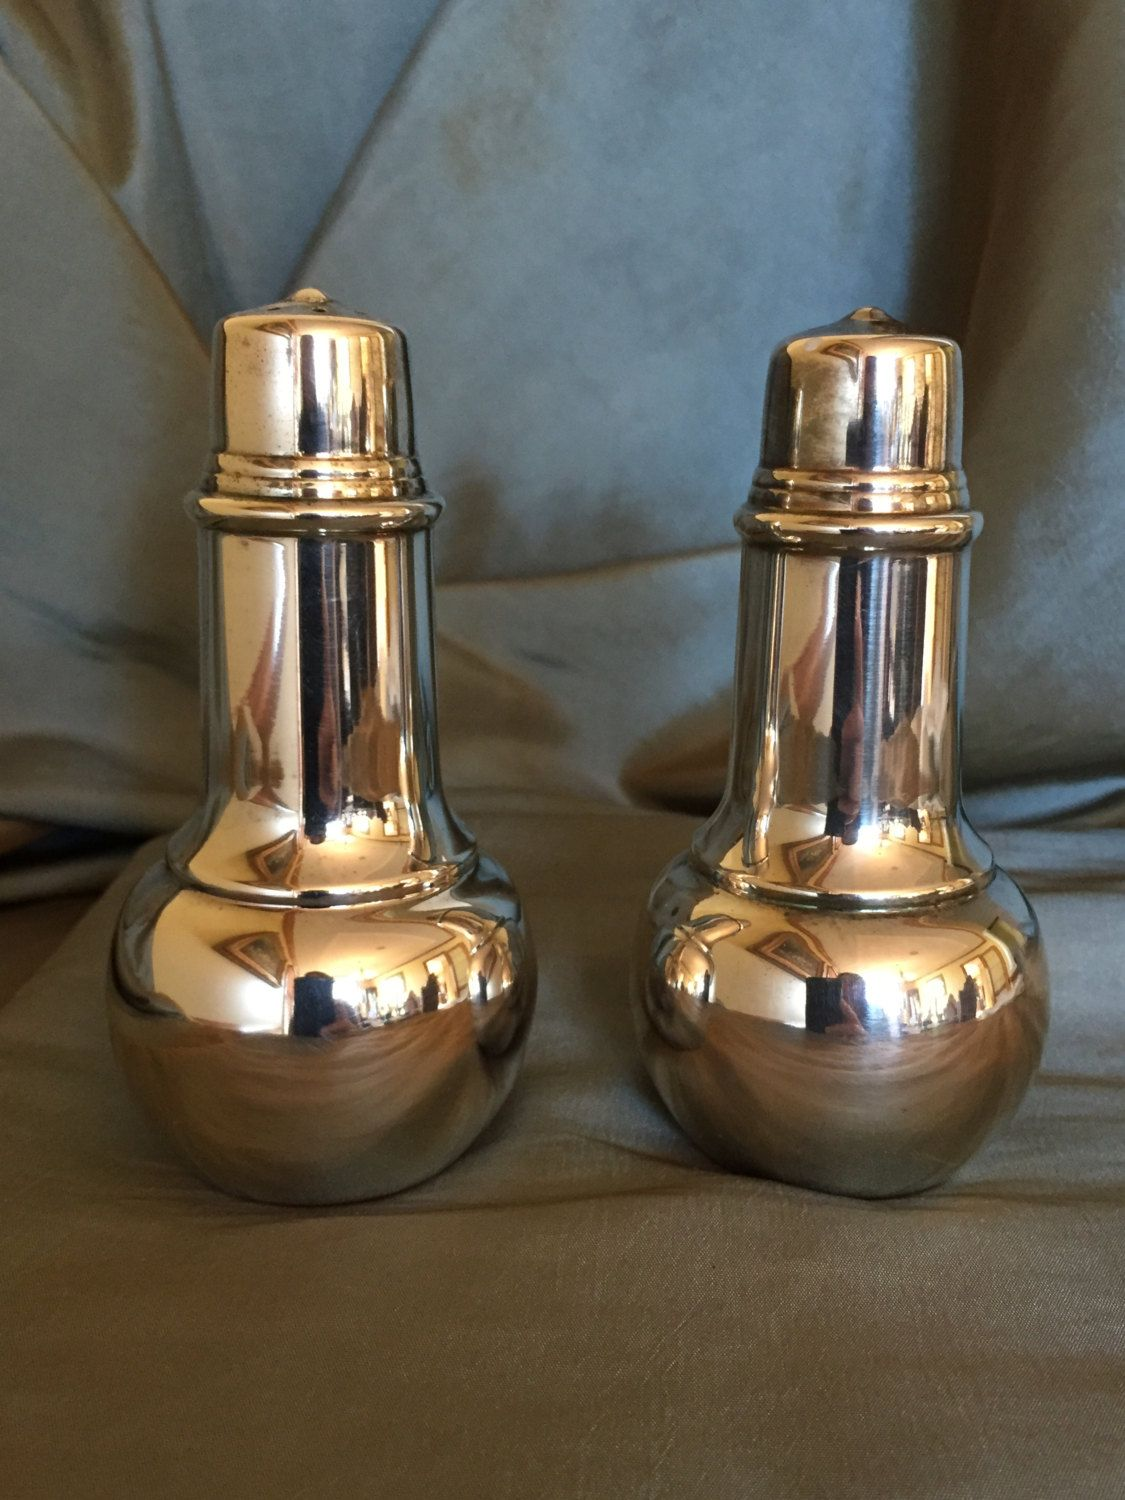 Modern Salt And Pepper Shakers Vintage 1950 39s International Silver Salt And Pepper